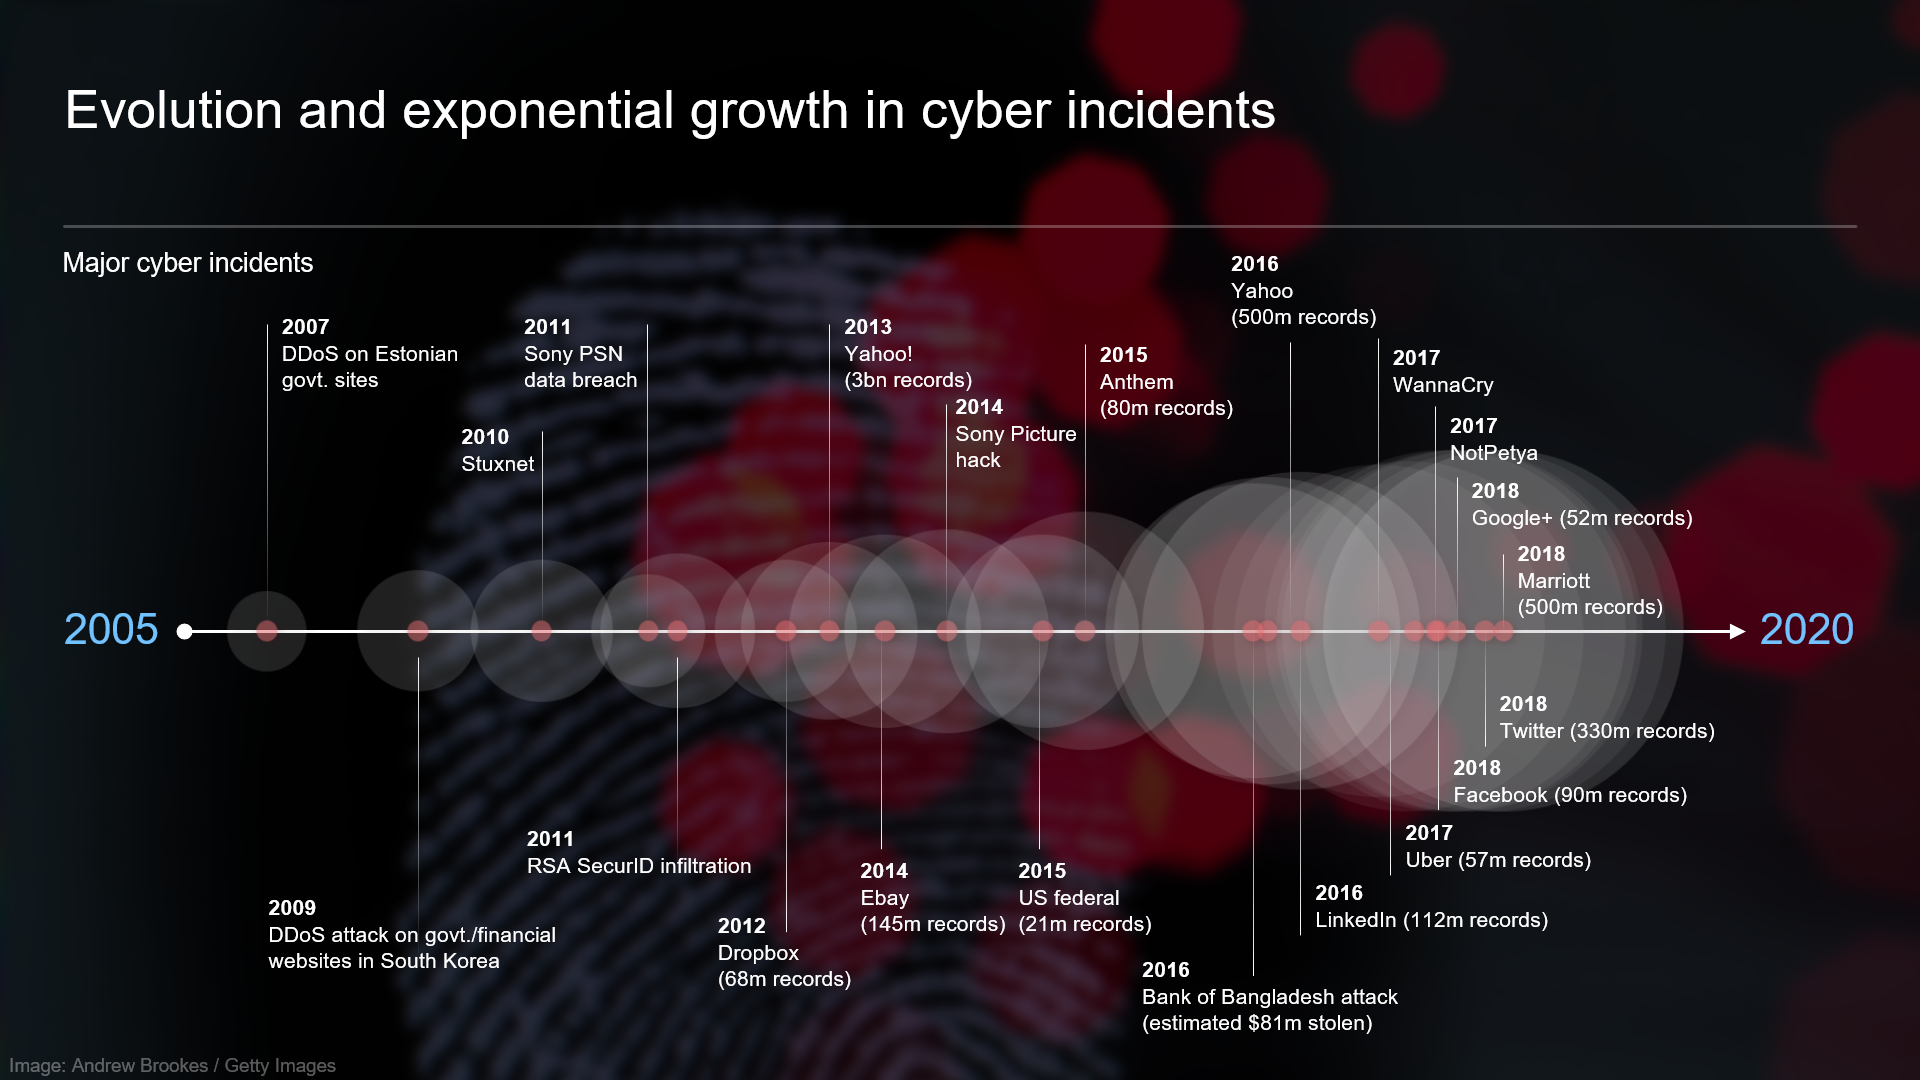 Timeline showing higher frquency of cyber incidents